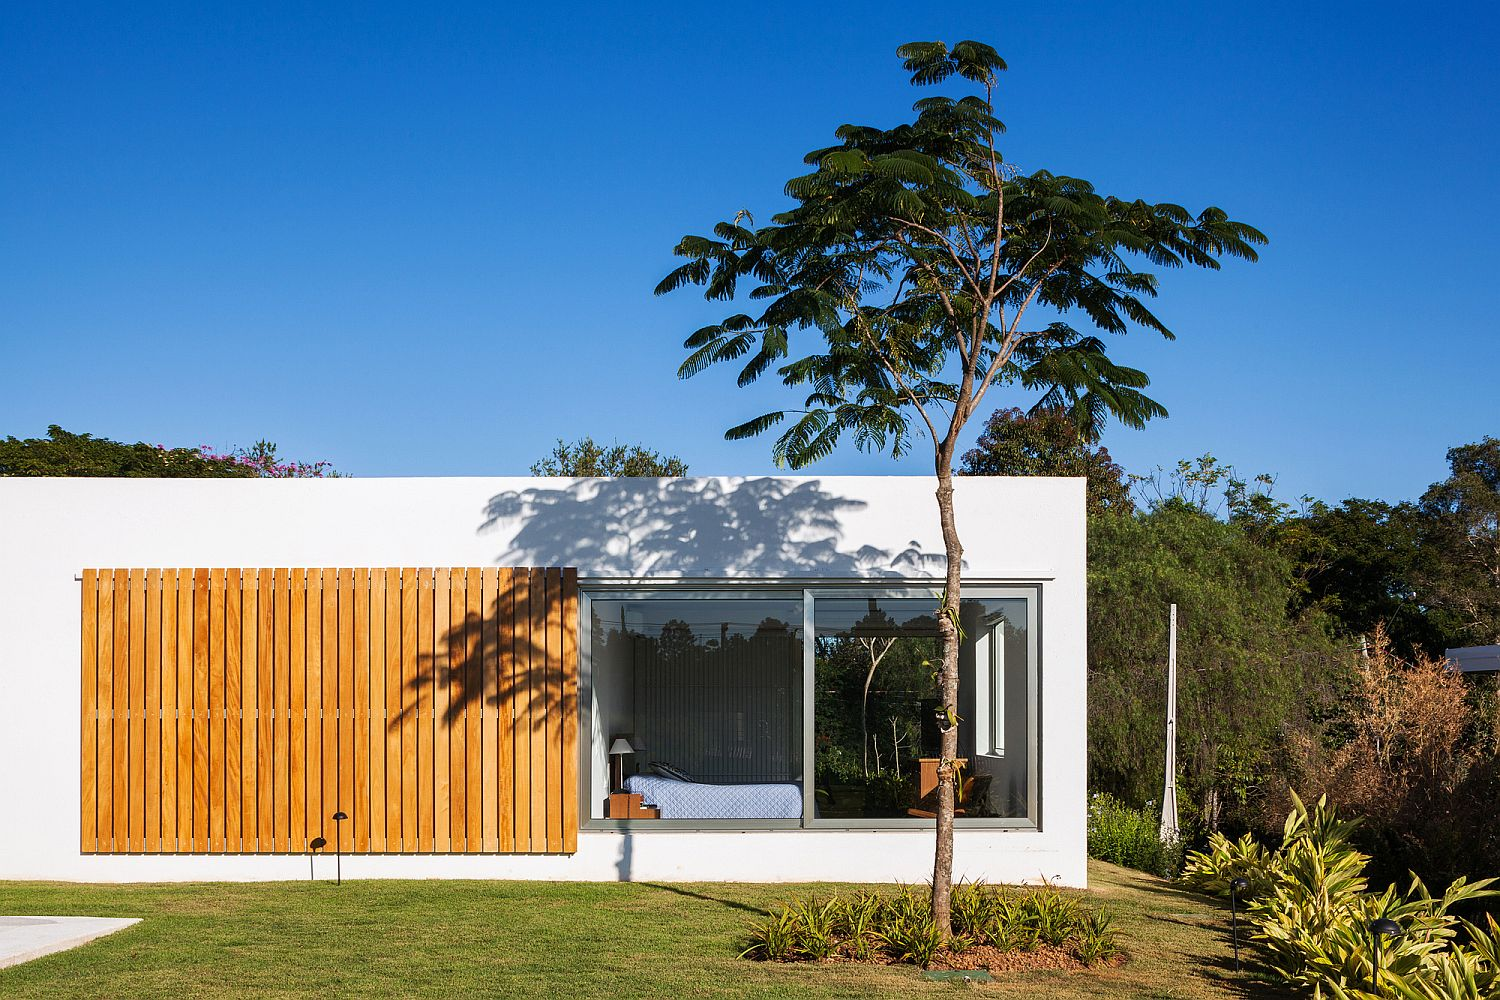 Sliding window made up of wooden slats offers privacy when needed